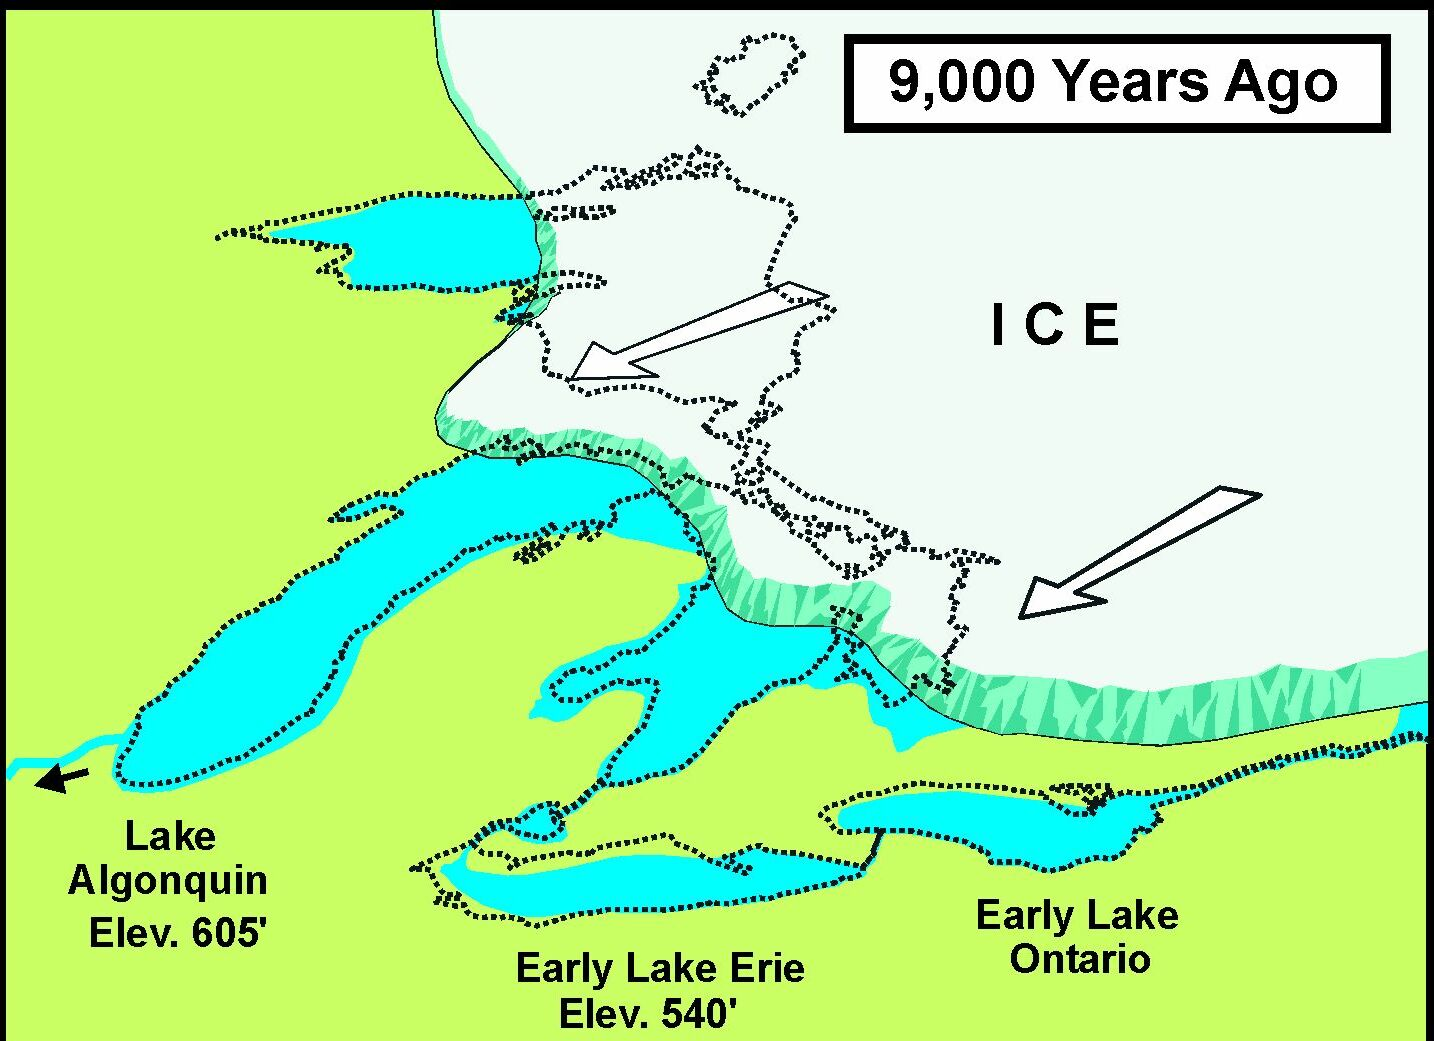 FileUSCOE Glacial Map  BCEjpg Wikipedia - Chicago map lake michigan